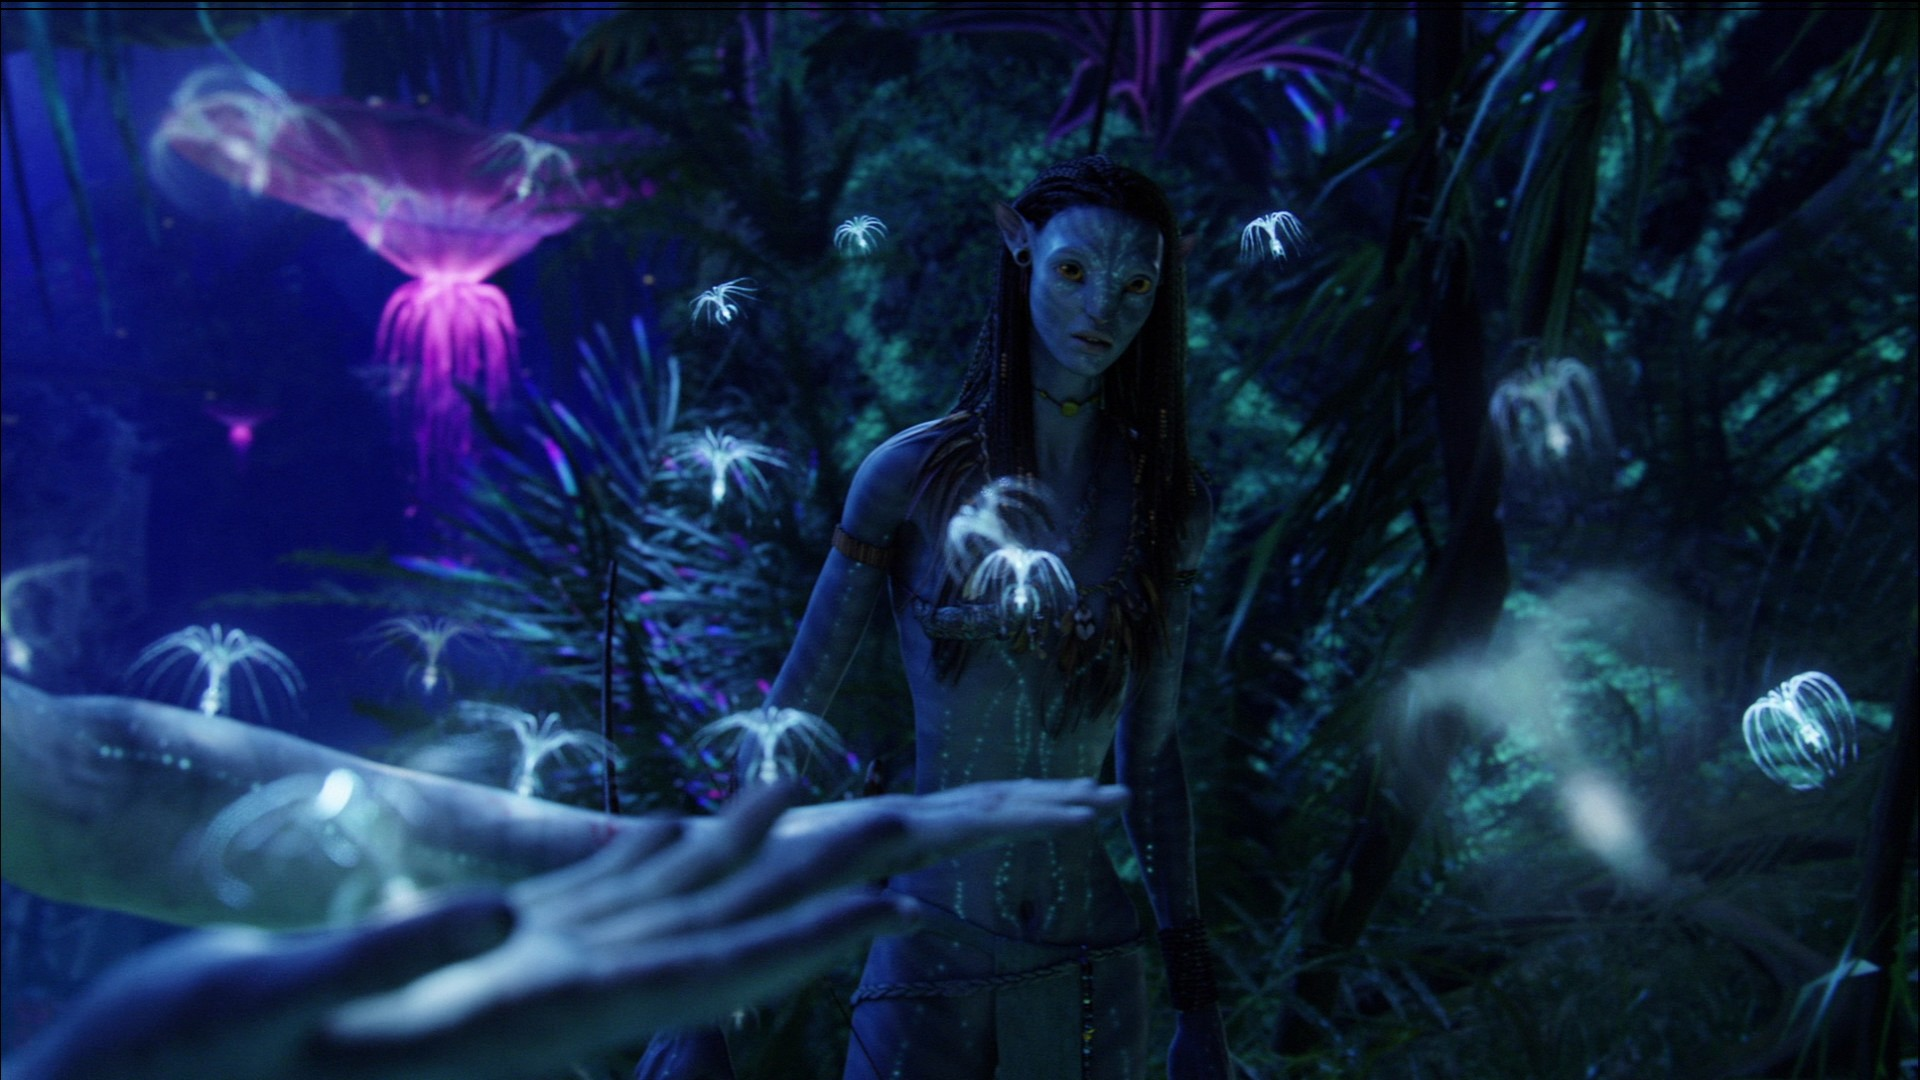 Free Hd Movie Download Point Avatar 2009 Free Hd Movie: Avatar HD Wallpapers 1080p